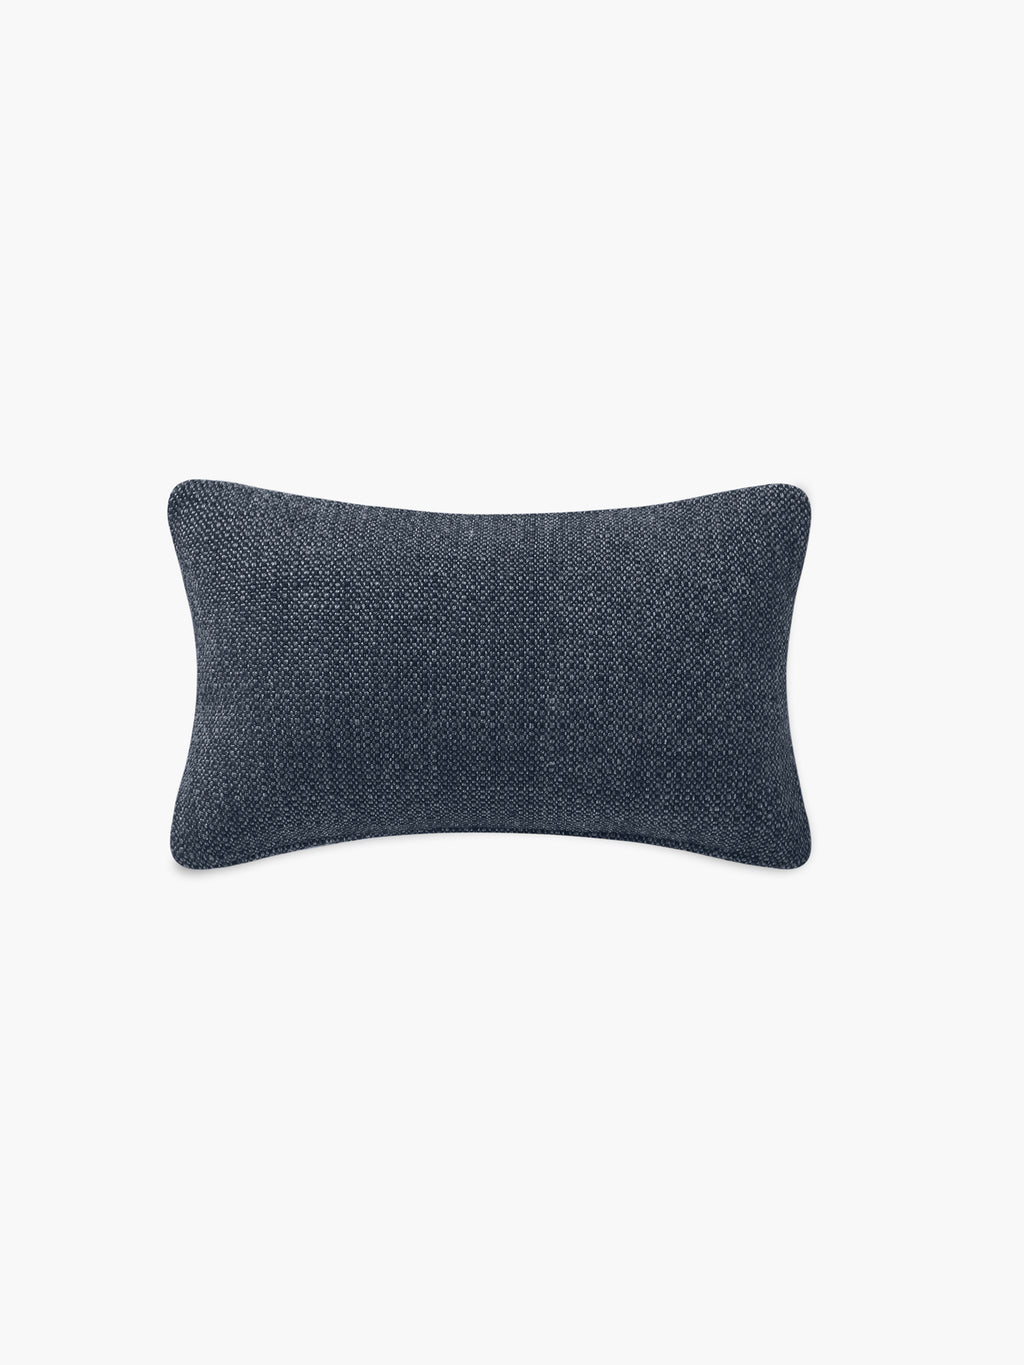 Basketweave Pillow Cover - Sapphire - 1